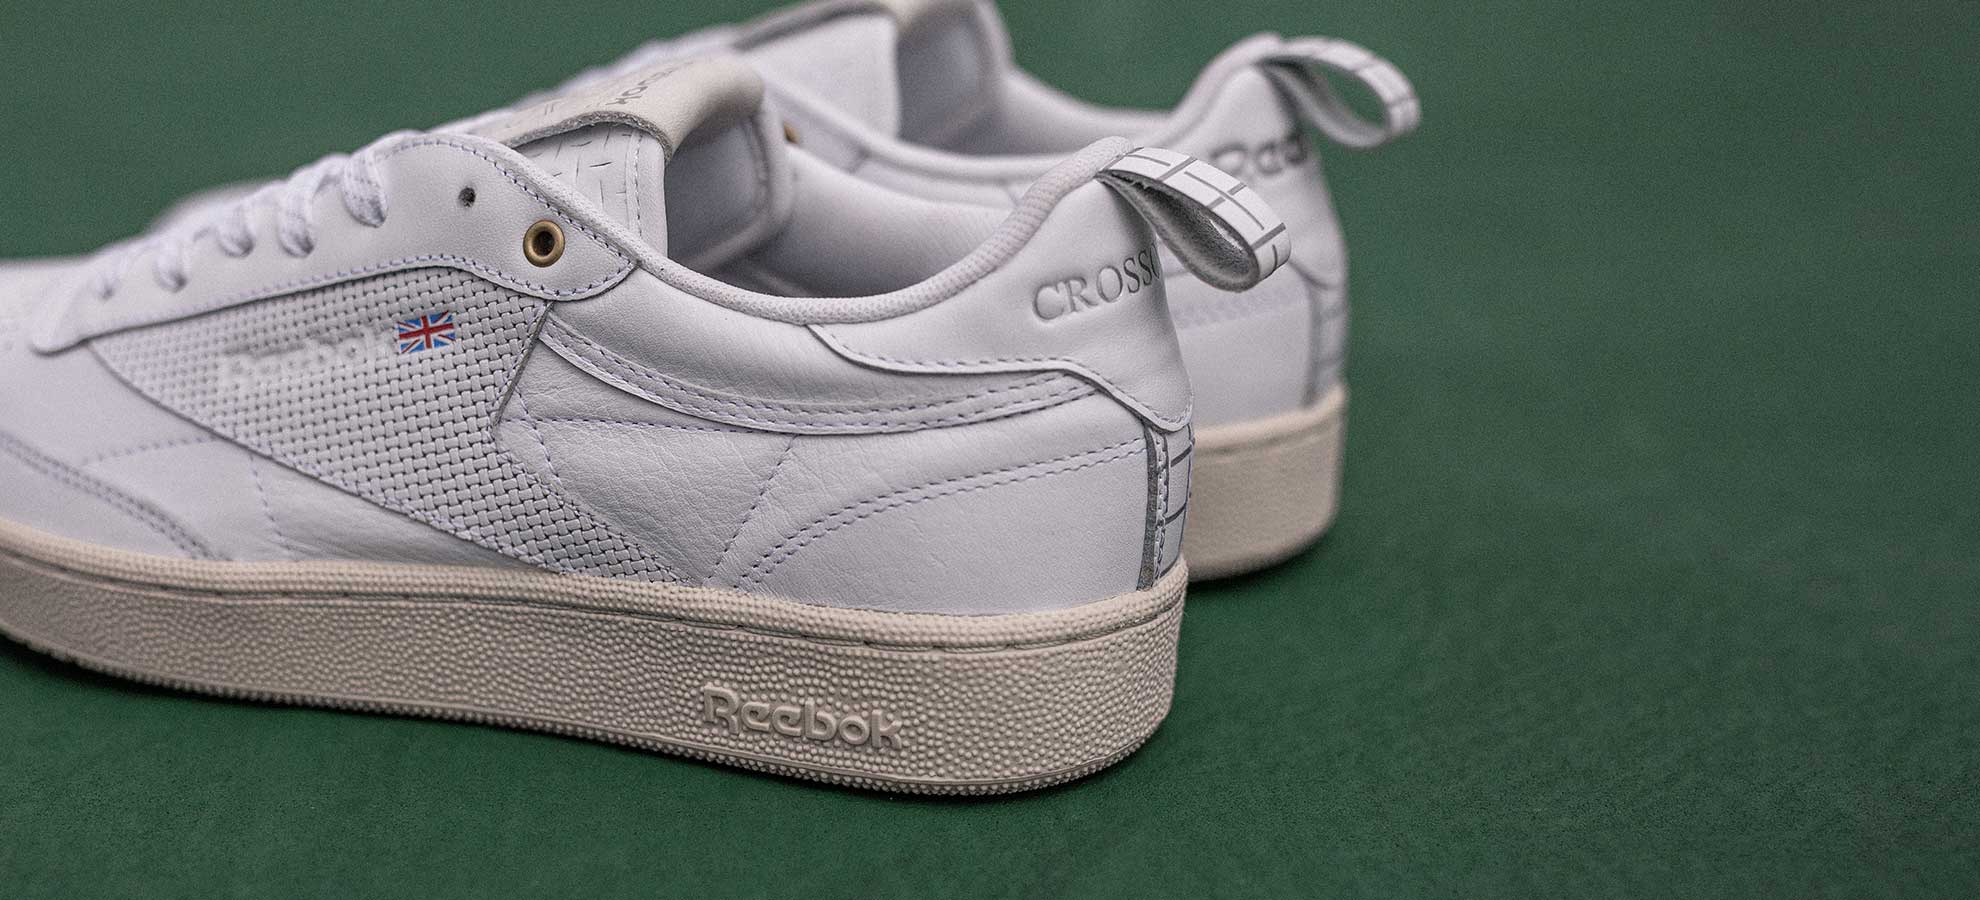 "CROSSOVER X REEBOK CLUB C ""MATCH POINT"""